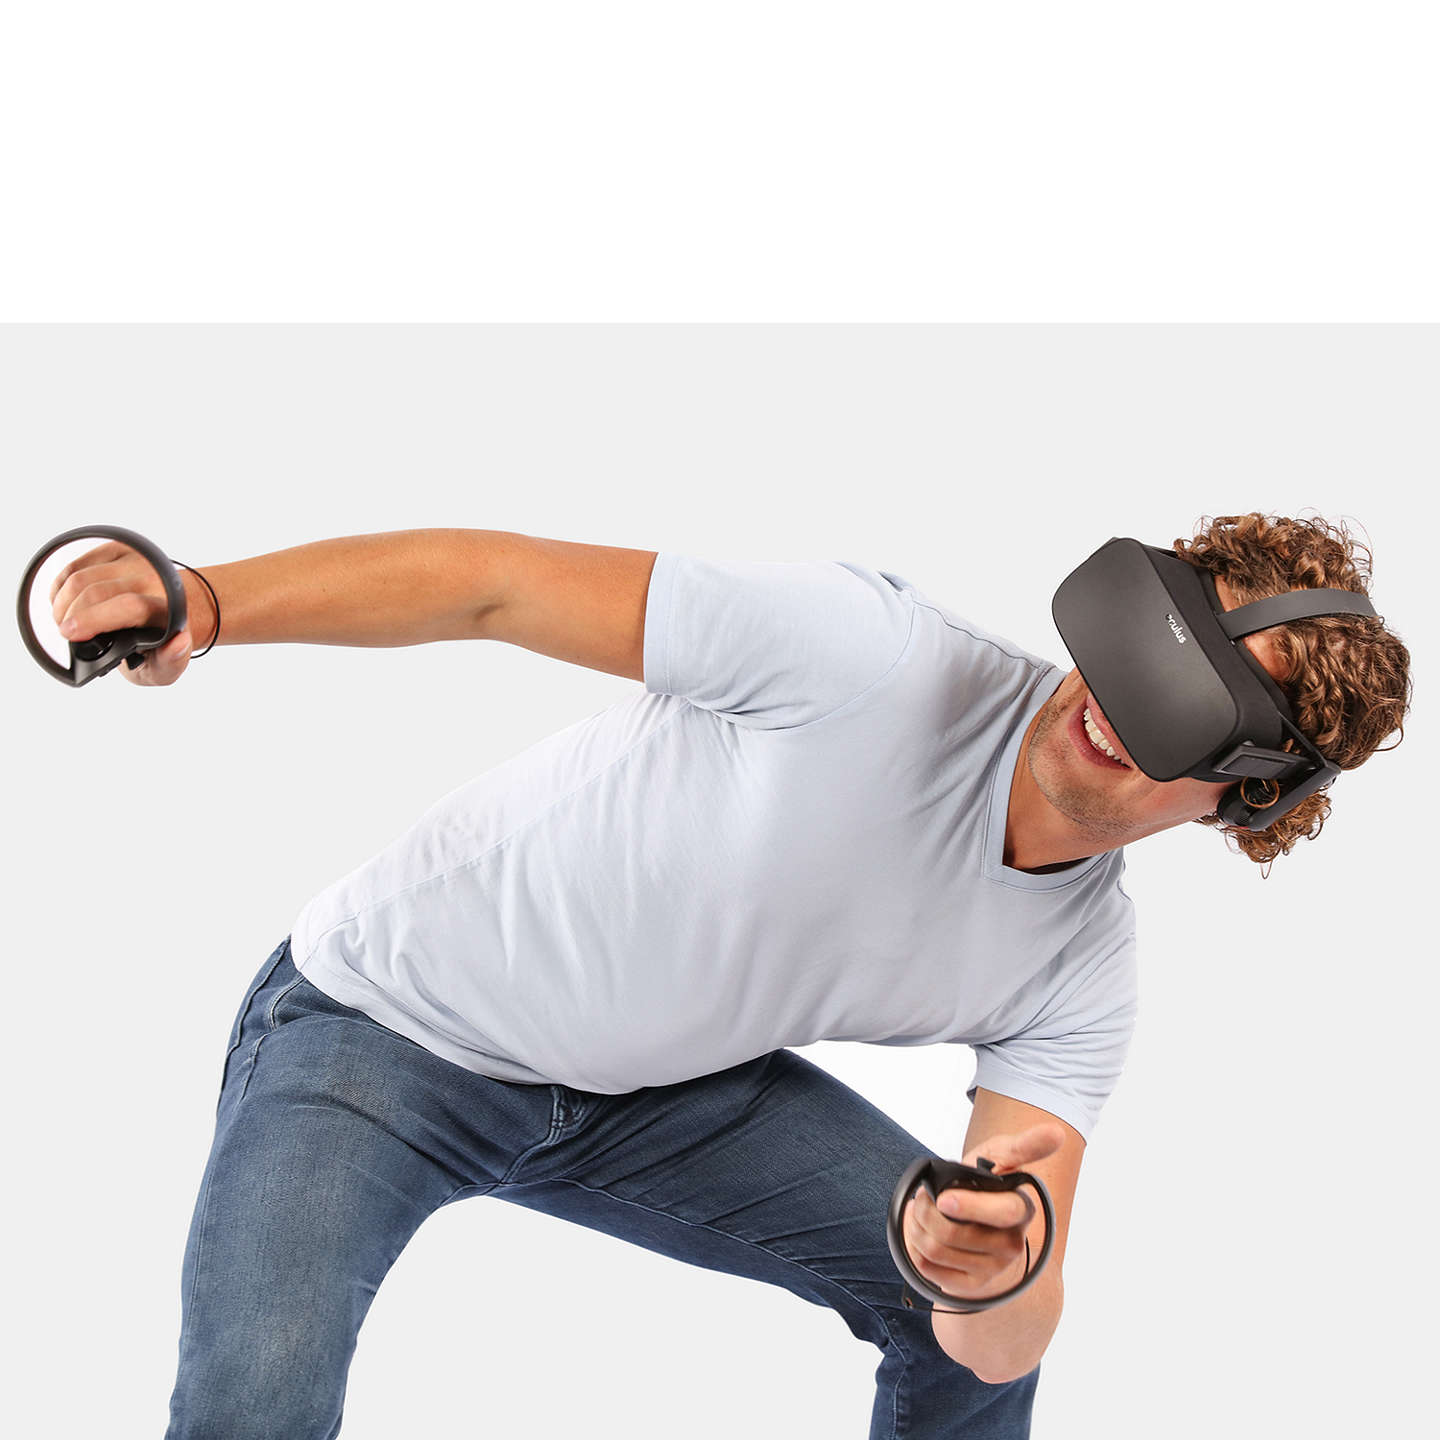 BuyOculus Rift Virtual Reality Headset and Touch Controllers Online at johnlewis.com